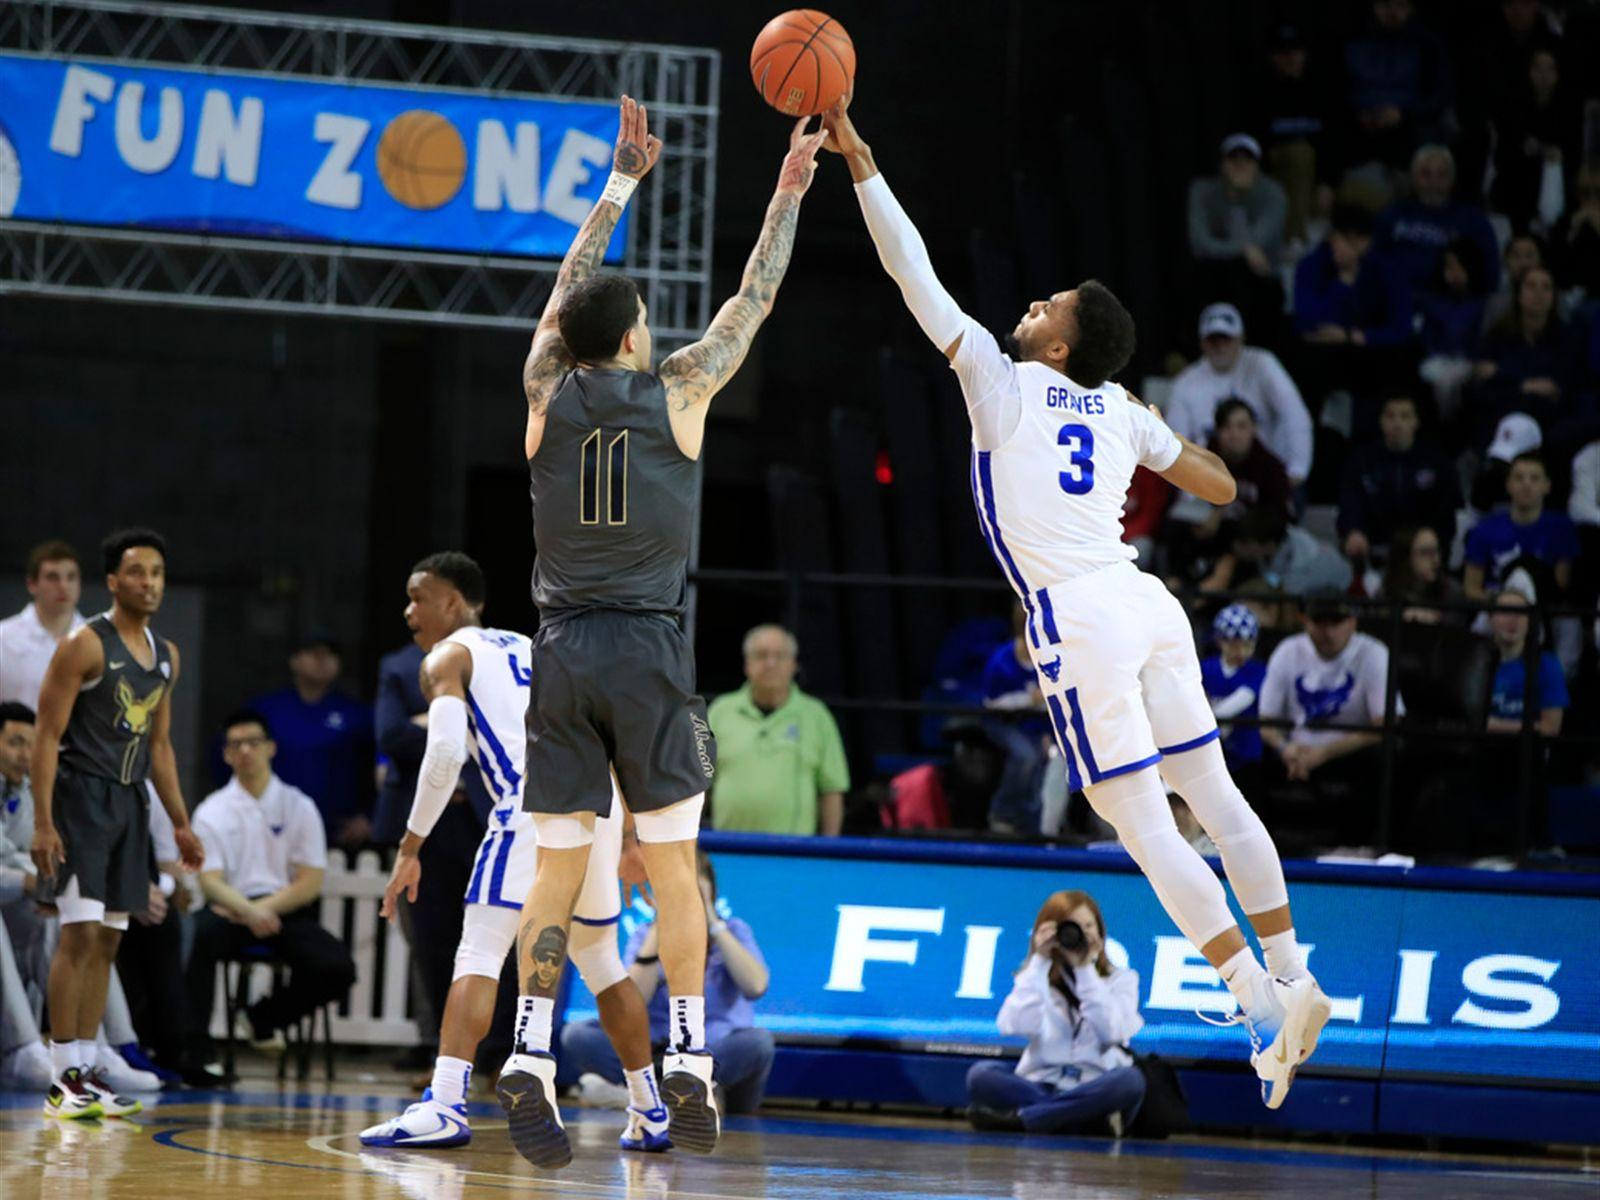 Ub Men S Basketball Primed To Bounce Back In 2020 21 Buffalo Sports Buffalonews Com